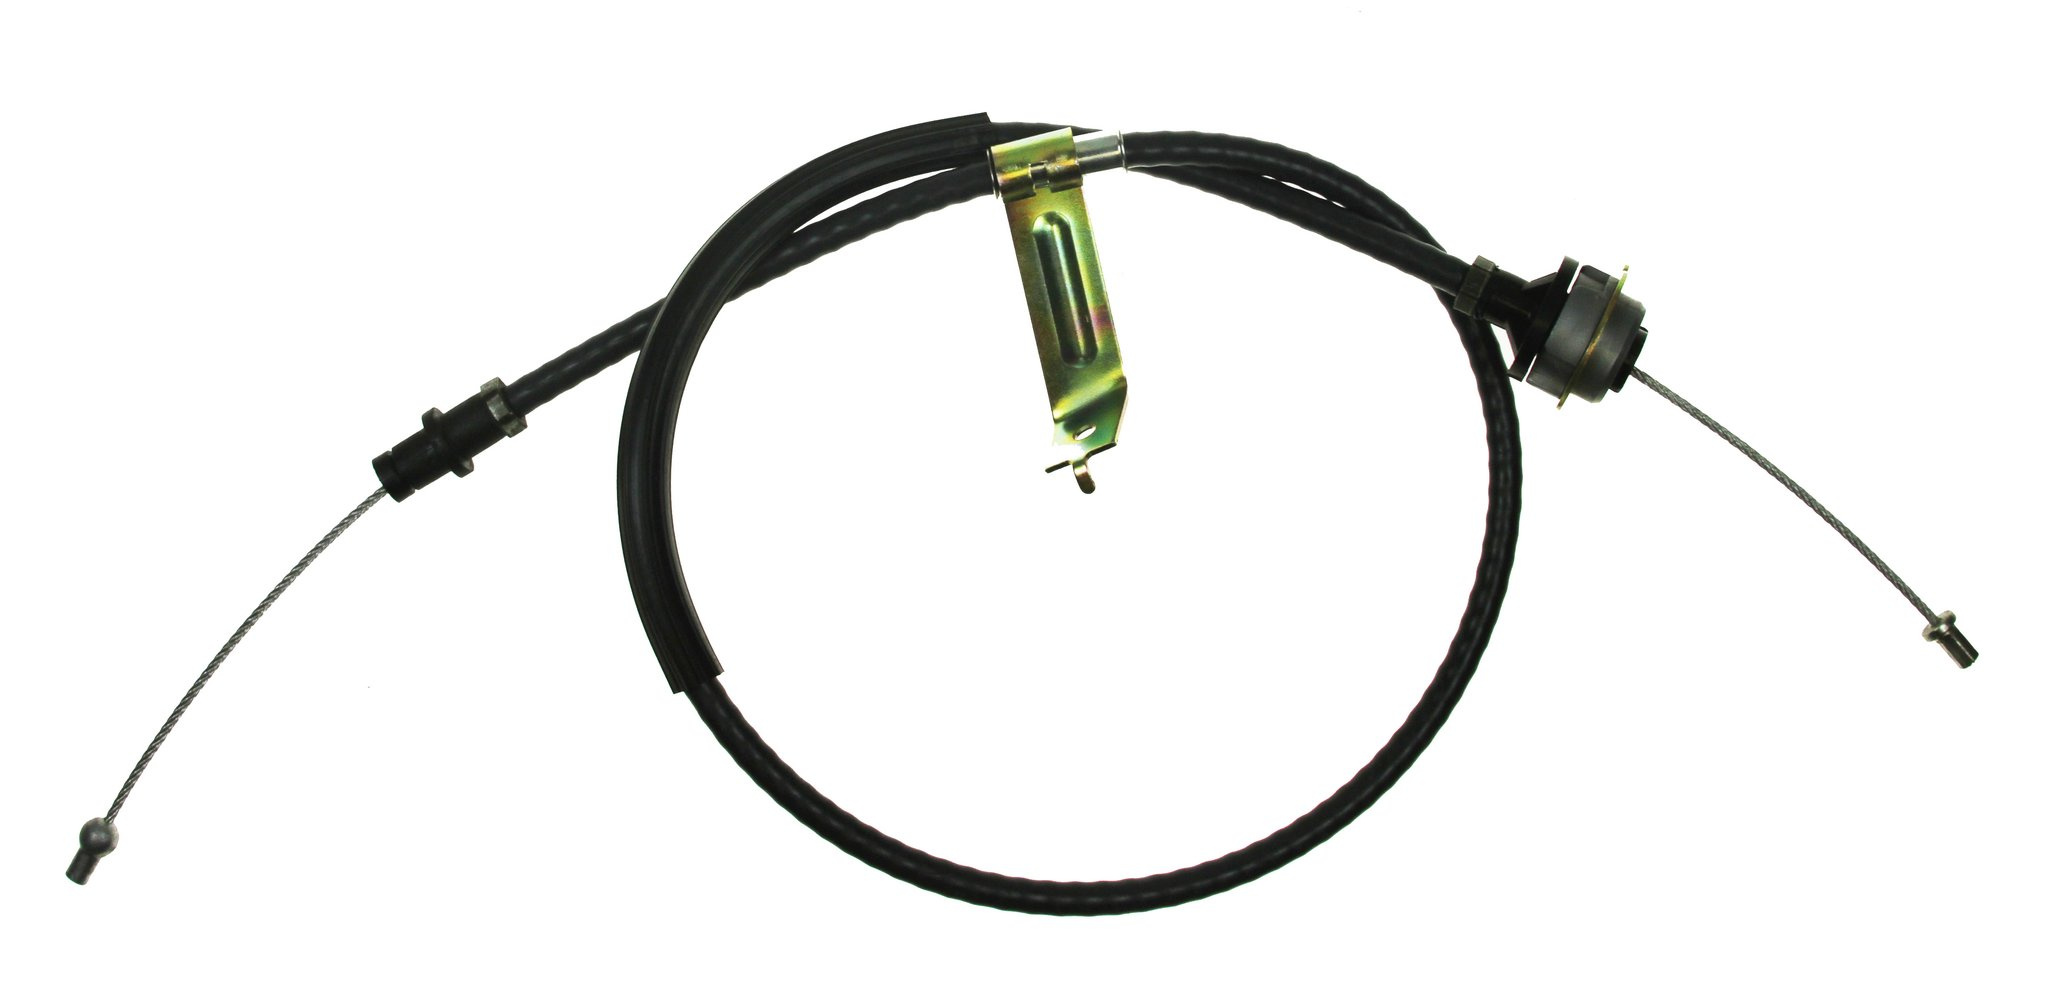 1988 Ford Mustang Clutch Cable Wiring Rz Cc318